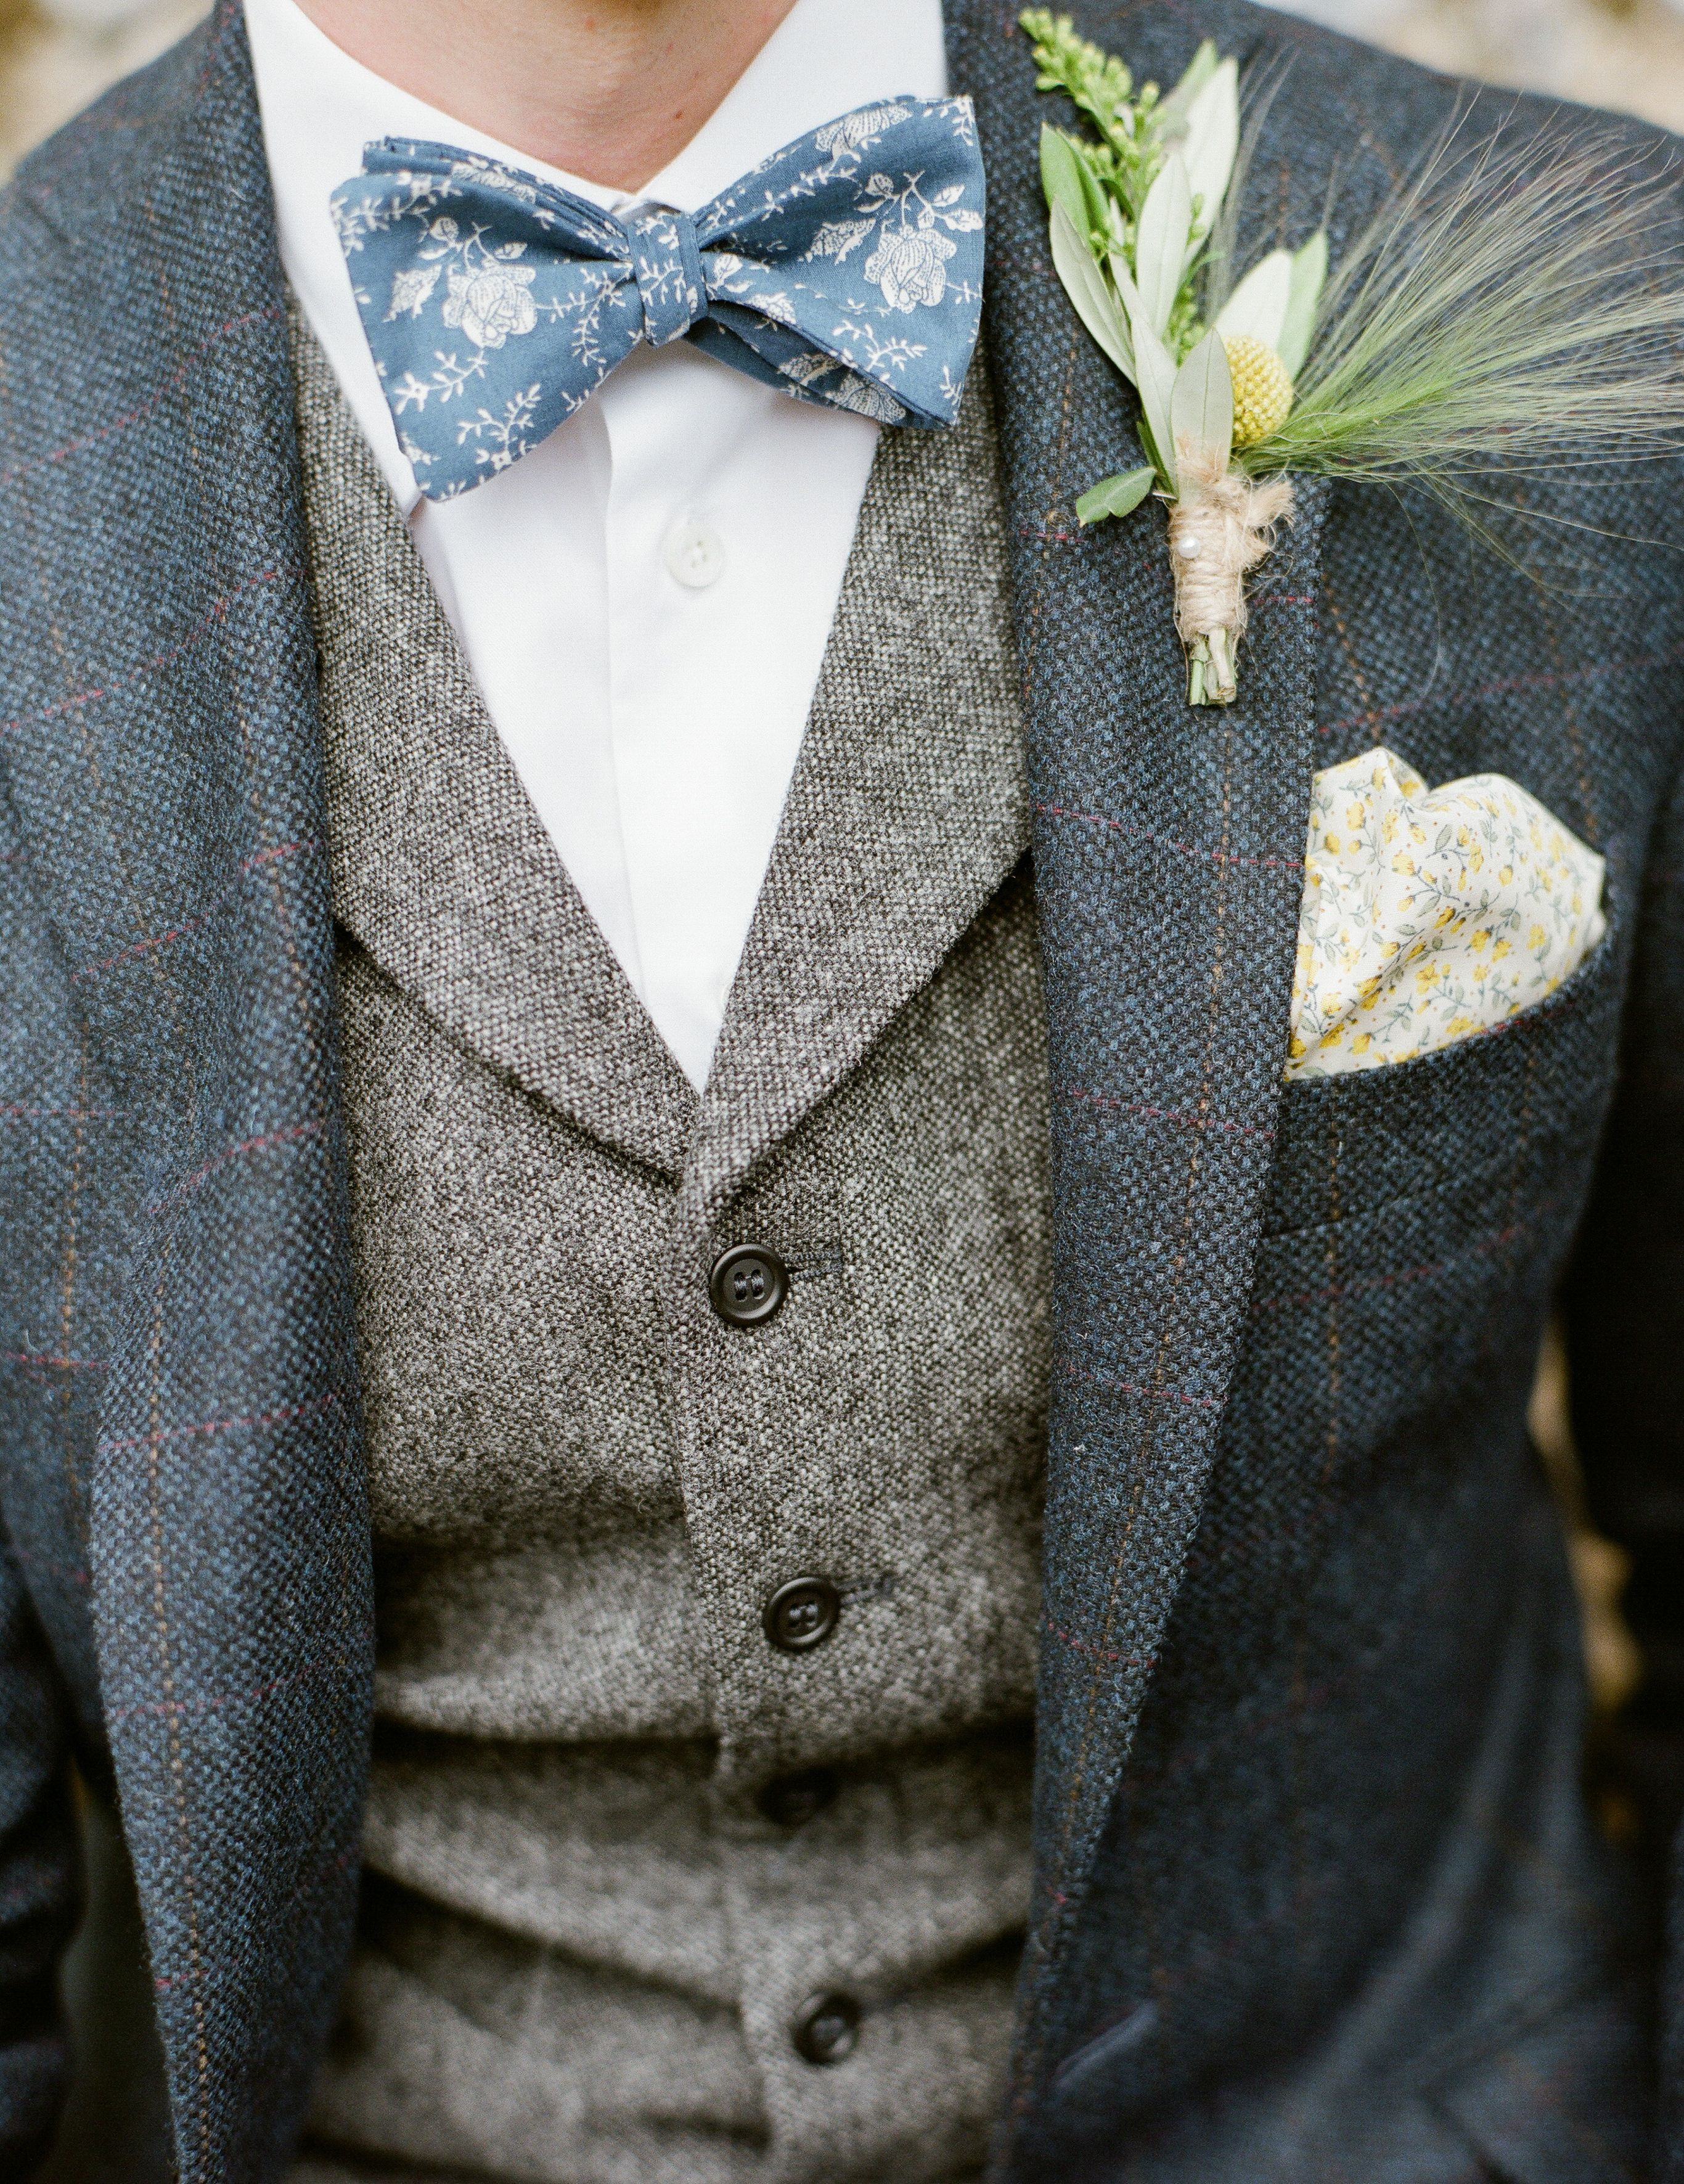 wholesale dealer how to buy convenience goods Rustic Tweed Groomsmen attire. Planning, Design ...